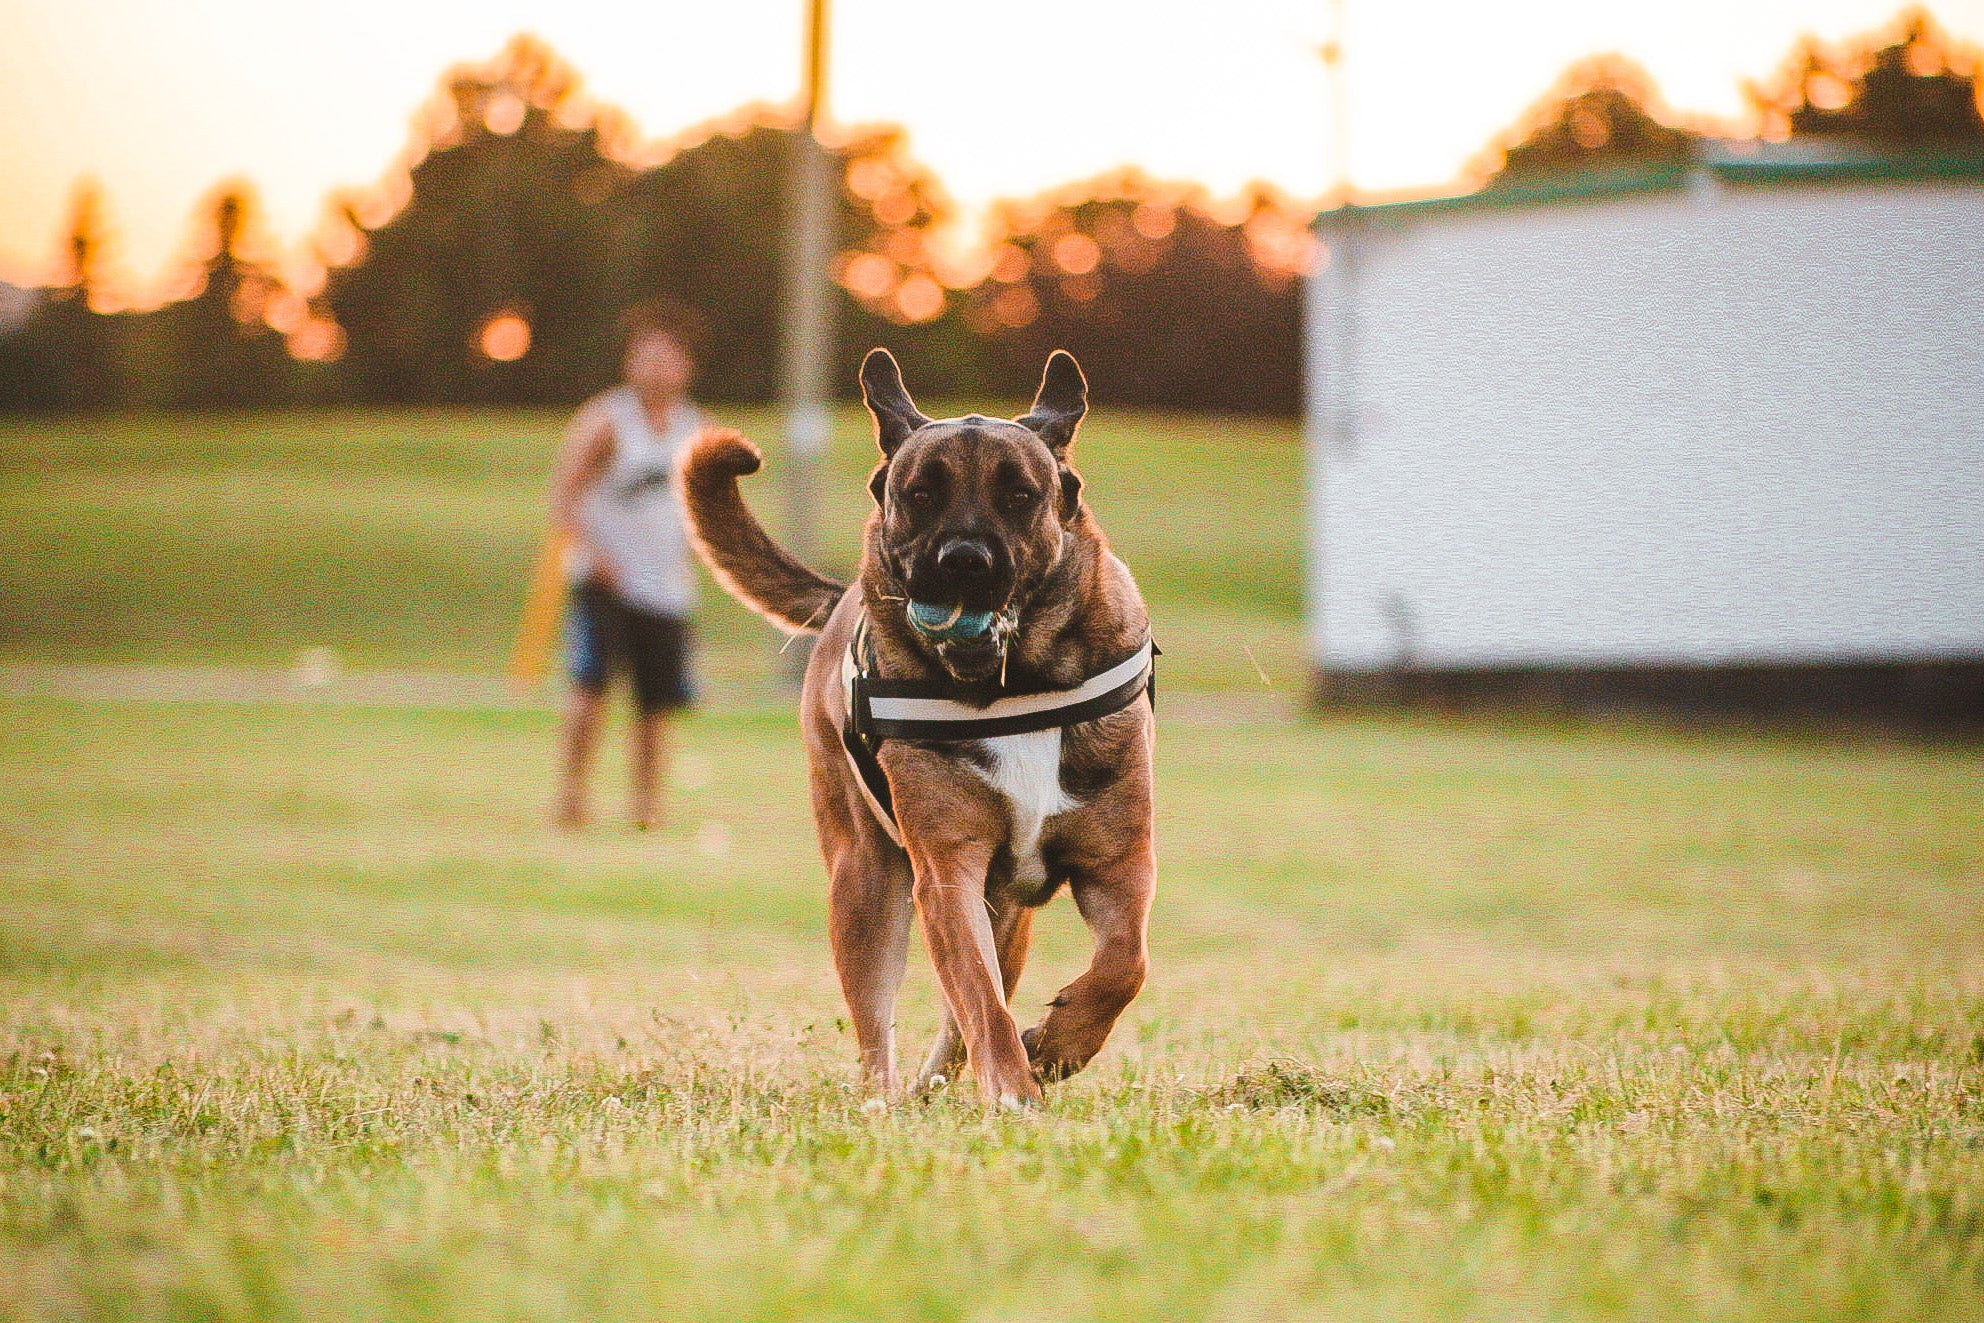 10 Fun Games to Play with Your Dog Before Summer is Over